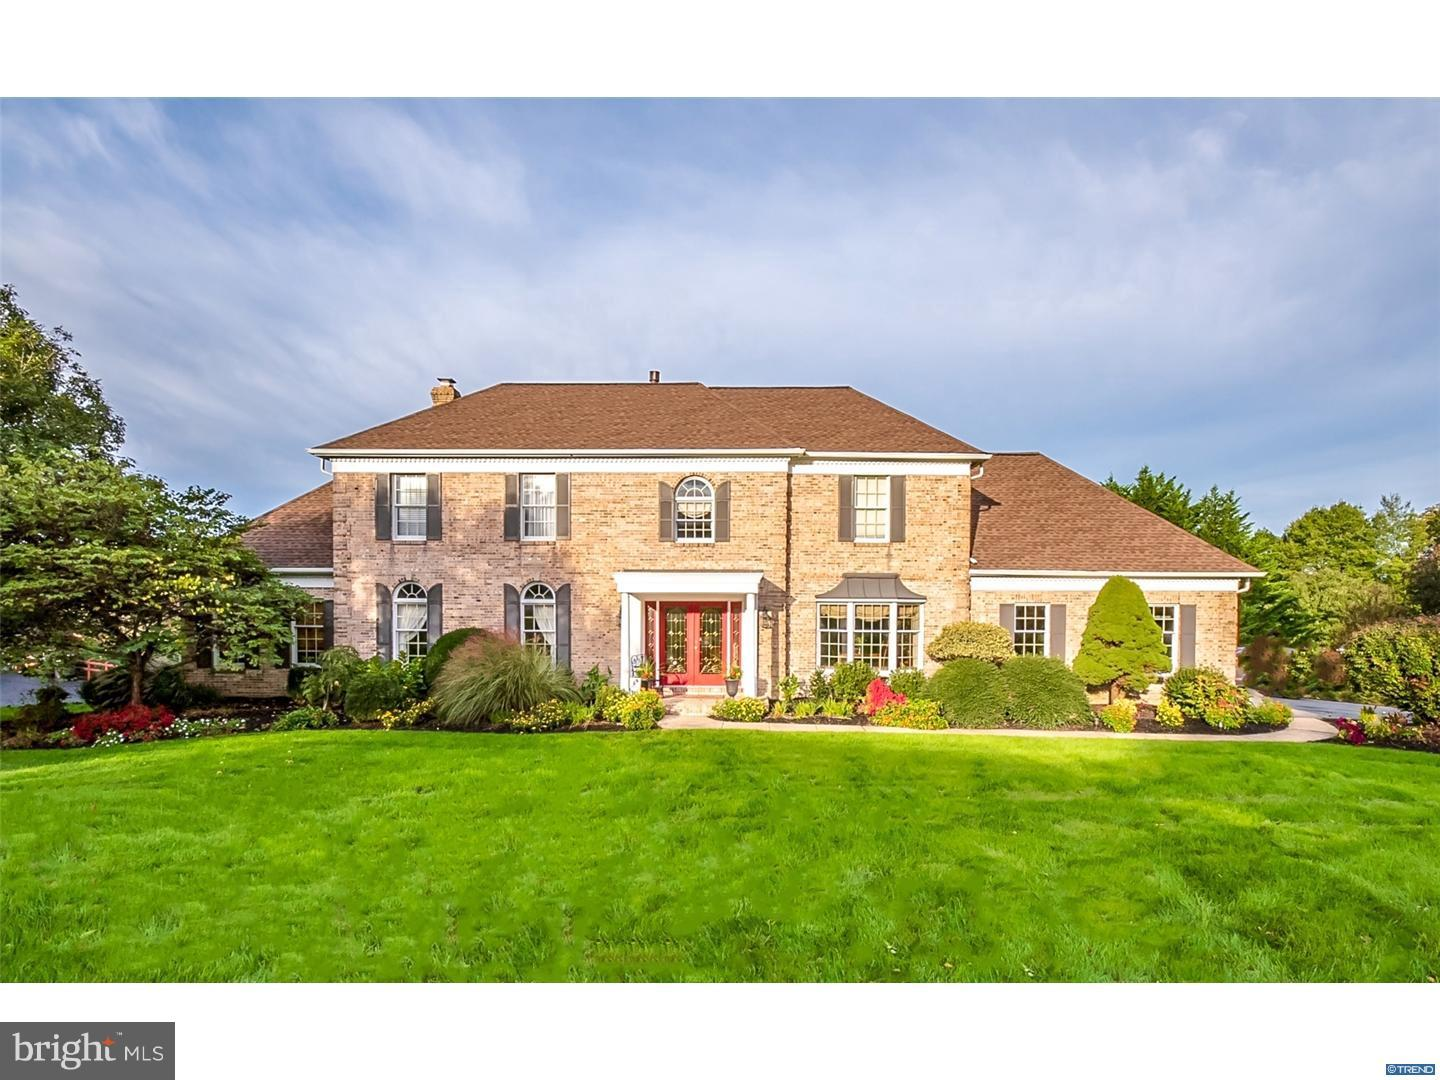 Single Family Home for Sale at 16 WITHERS WAY Hockessin, Delaware 19707 United States